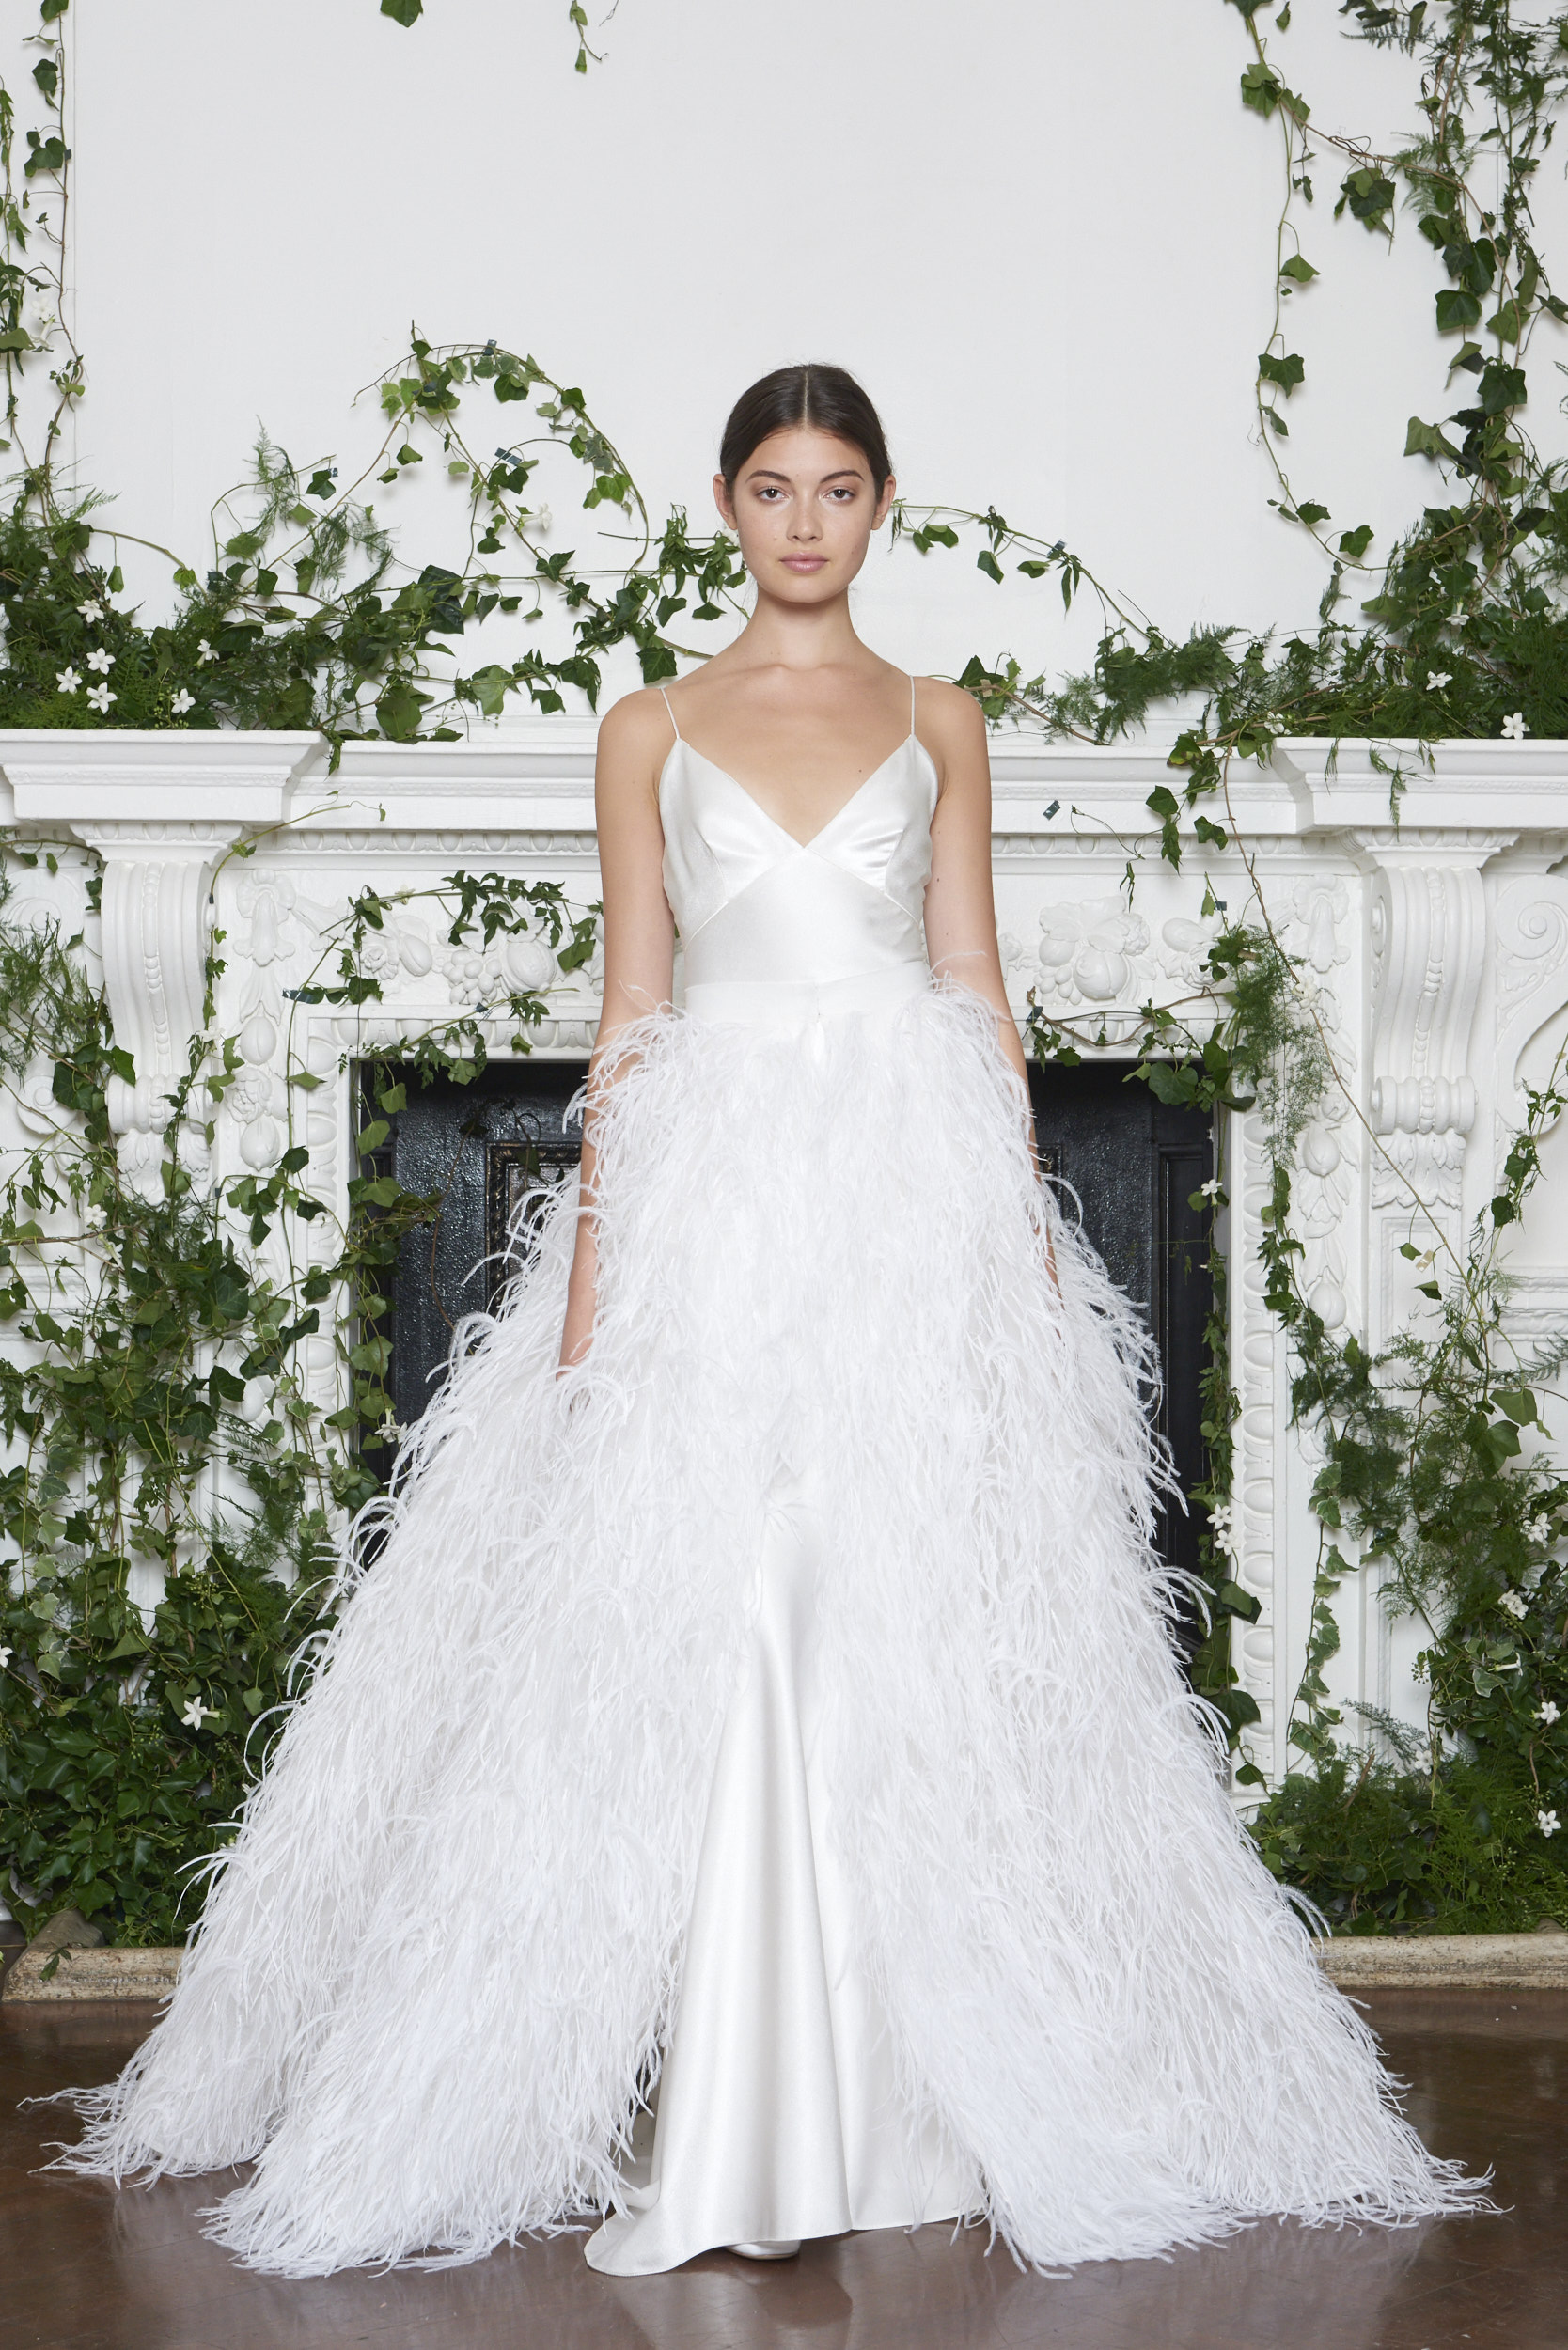 Monique Lhuillier Fall 2018 Ball Gown with Feather Overskirt